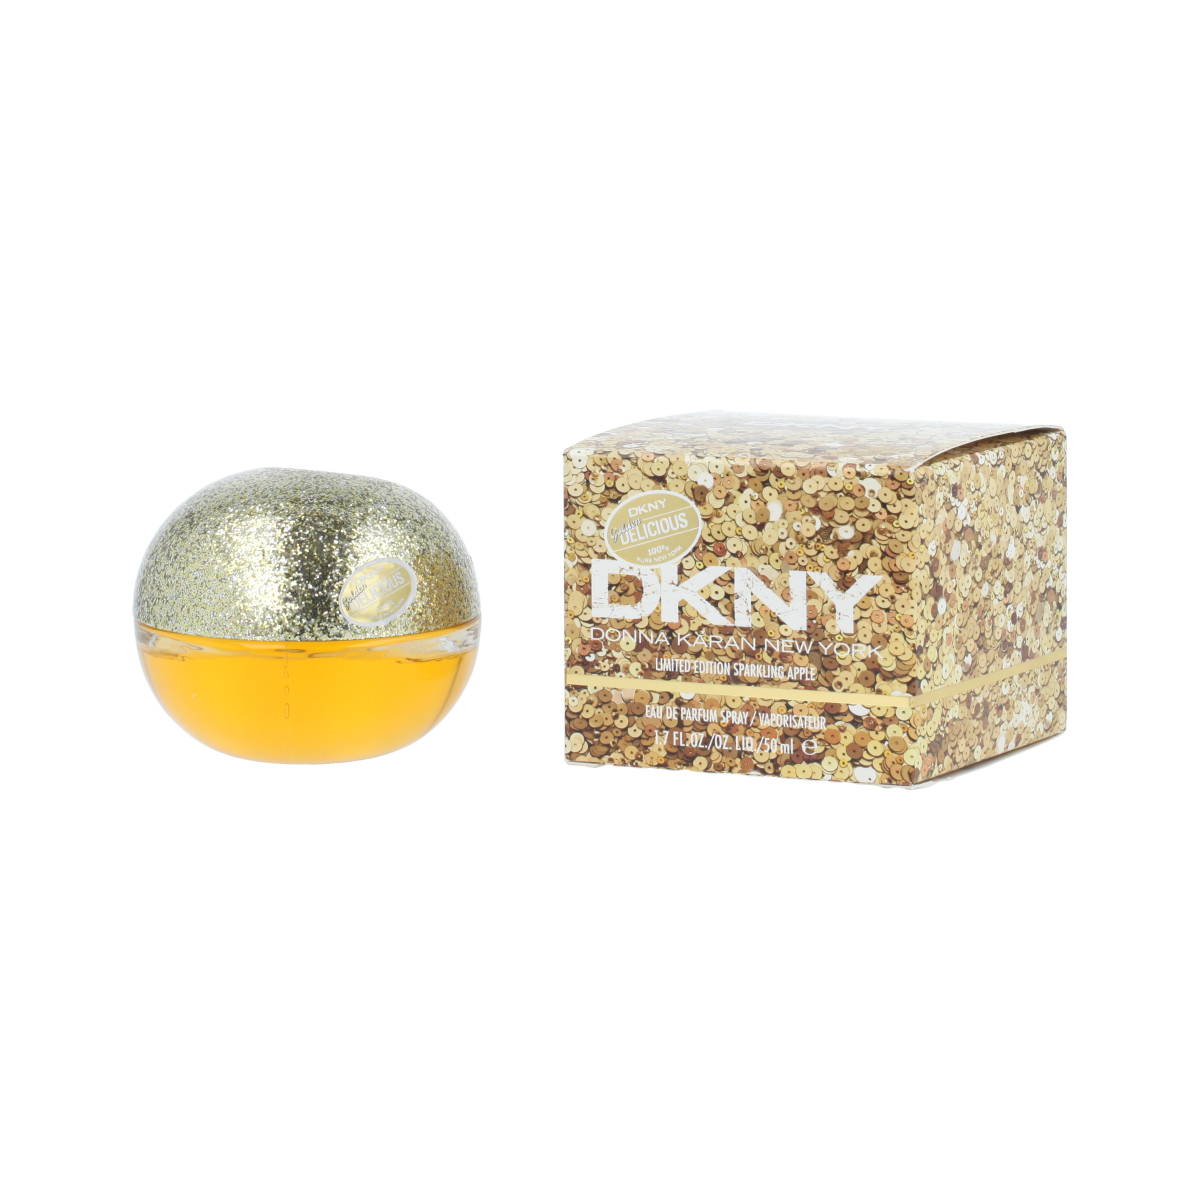 DKNY Donna Karan DKNY Golden Delicious Sparkling Apple EDP 50 ml W